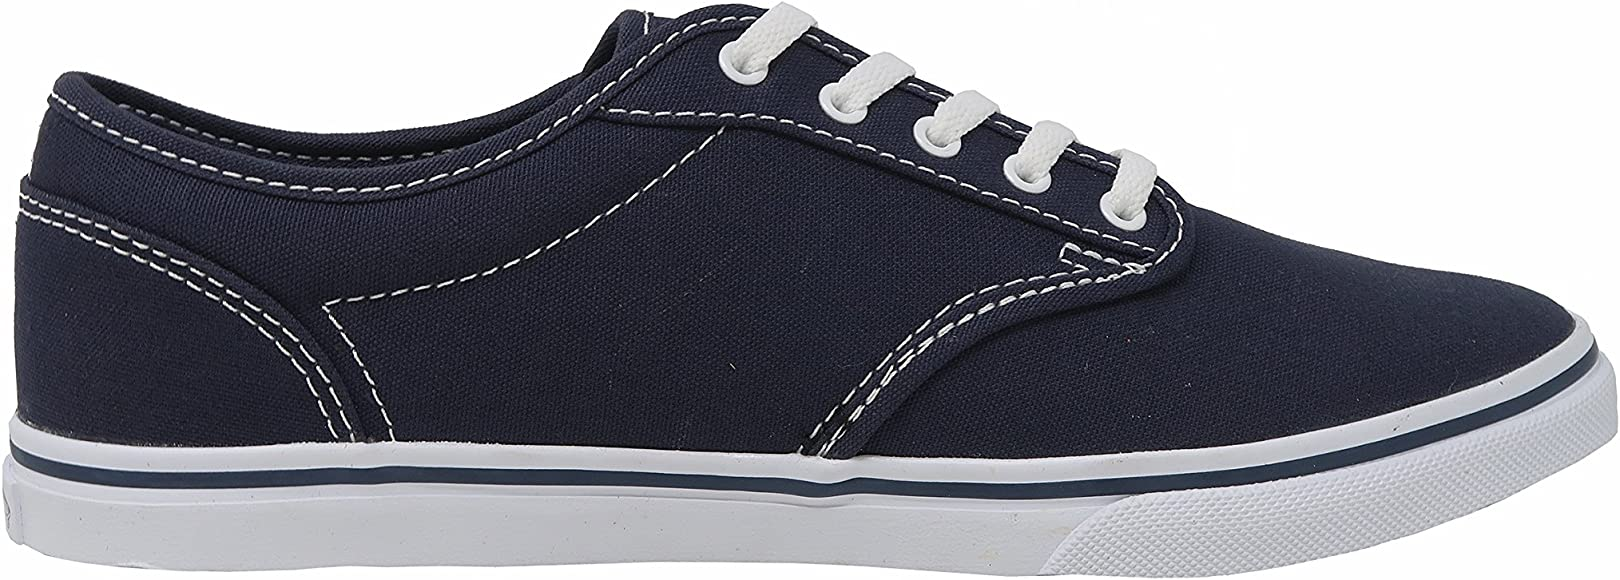 Atwood Low Fashion Sneakers Shoes